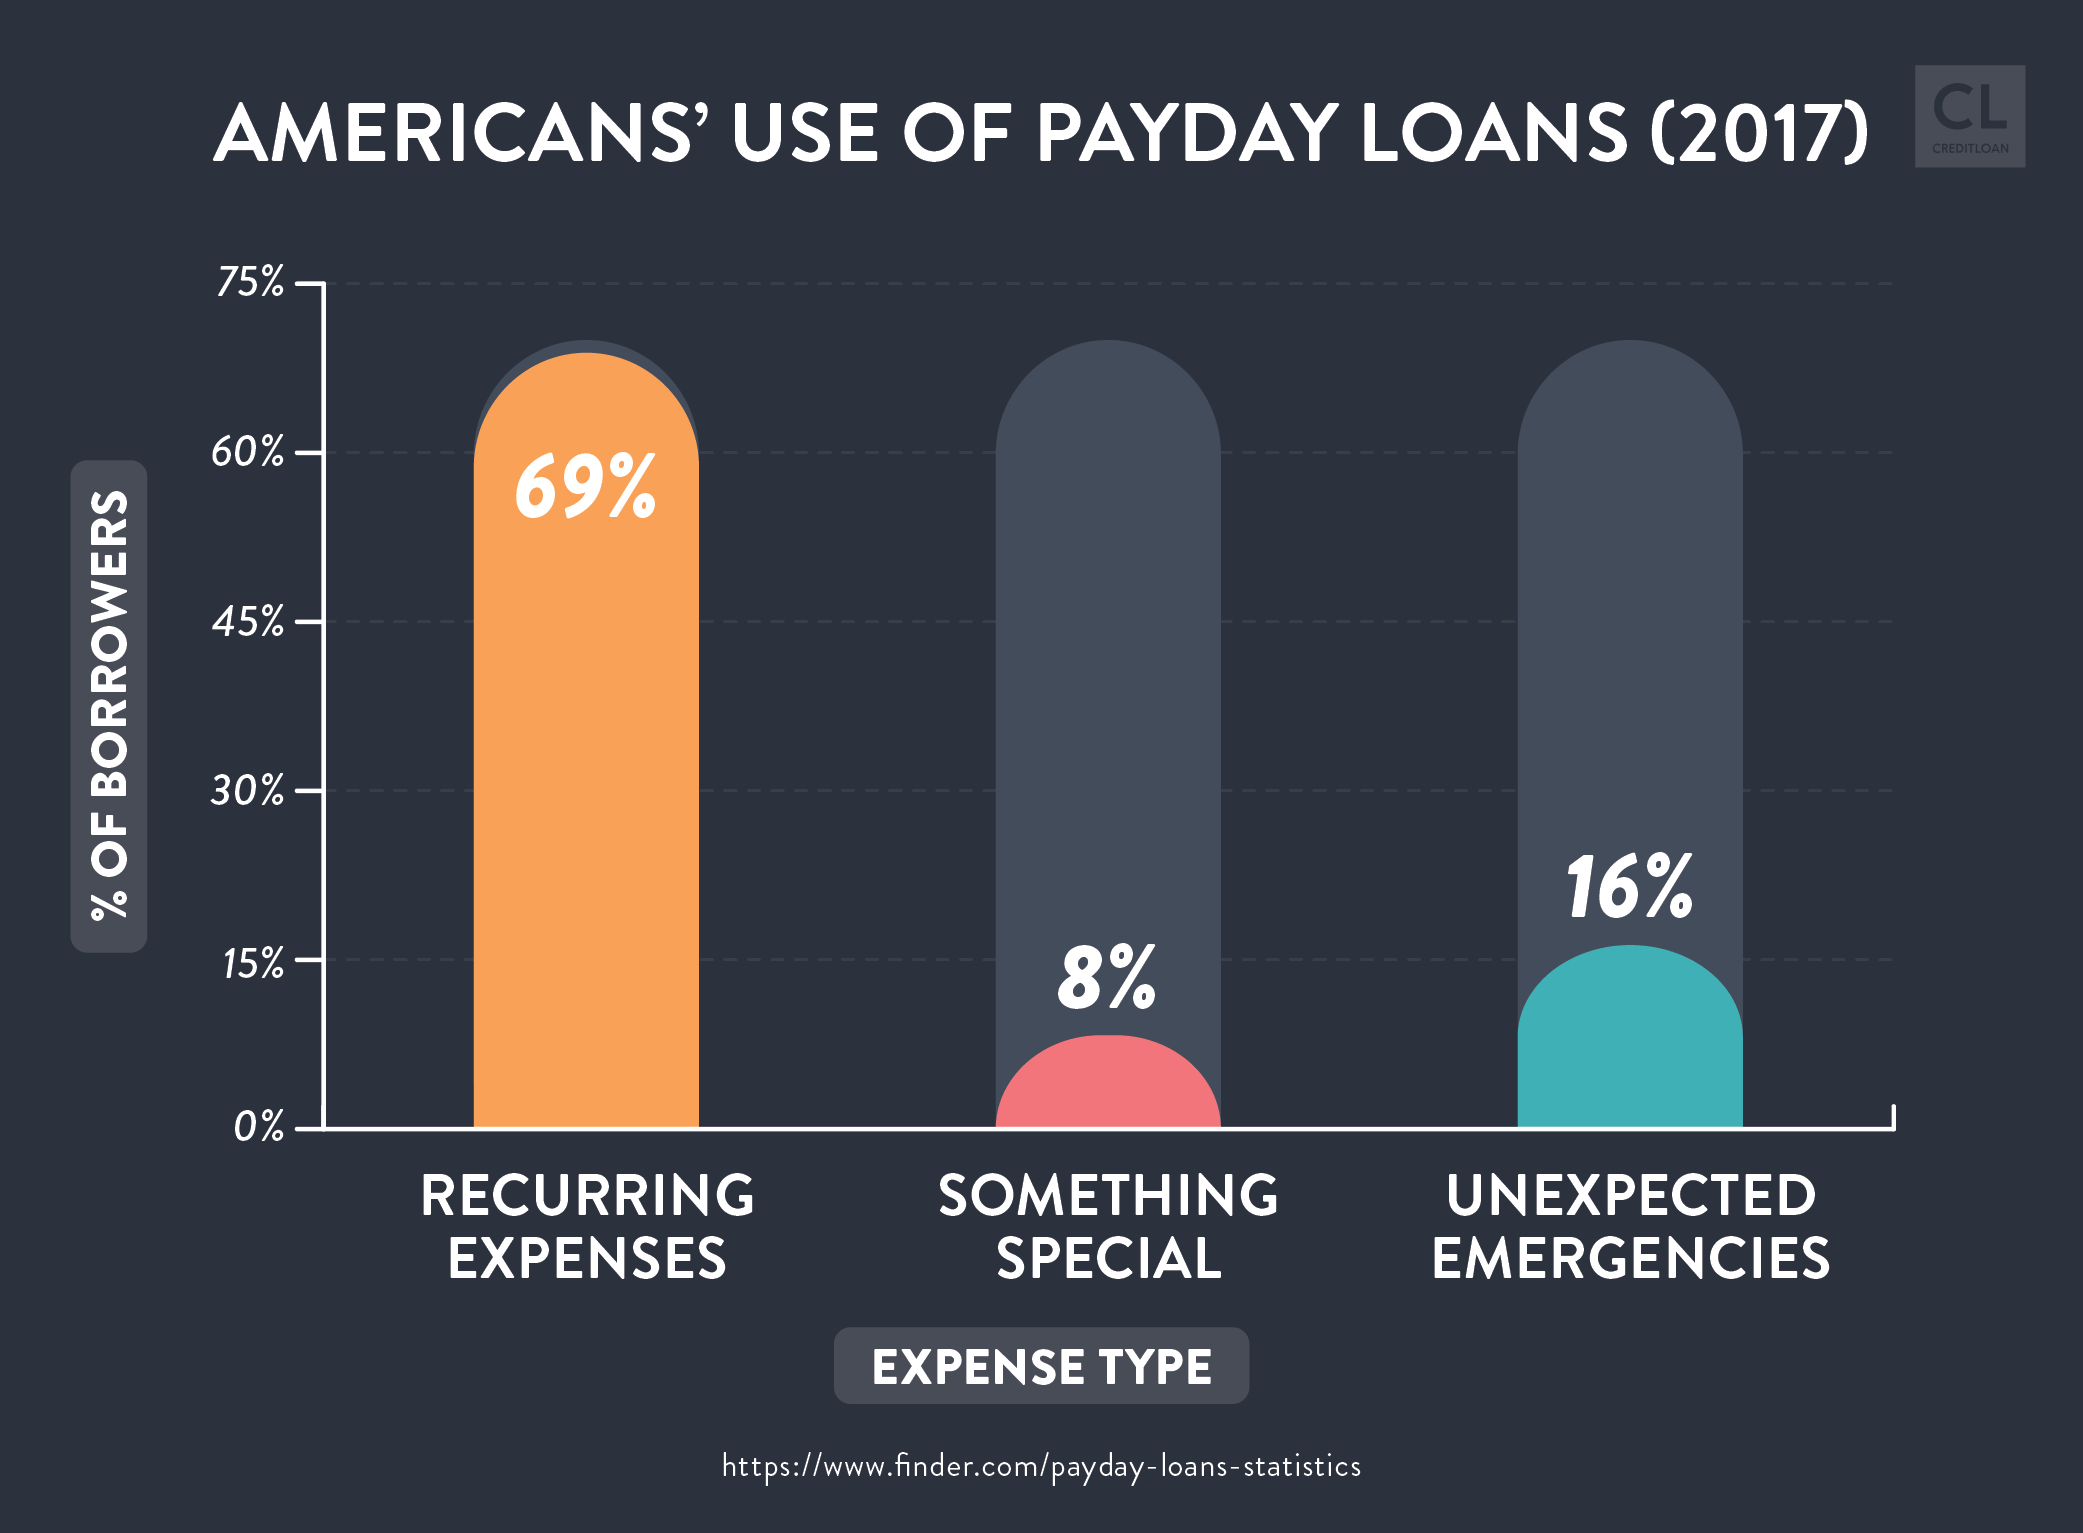 2017 Americans' Use of Payday Loans